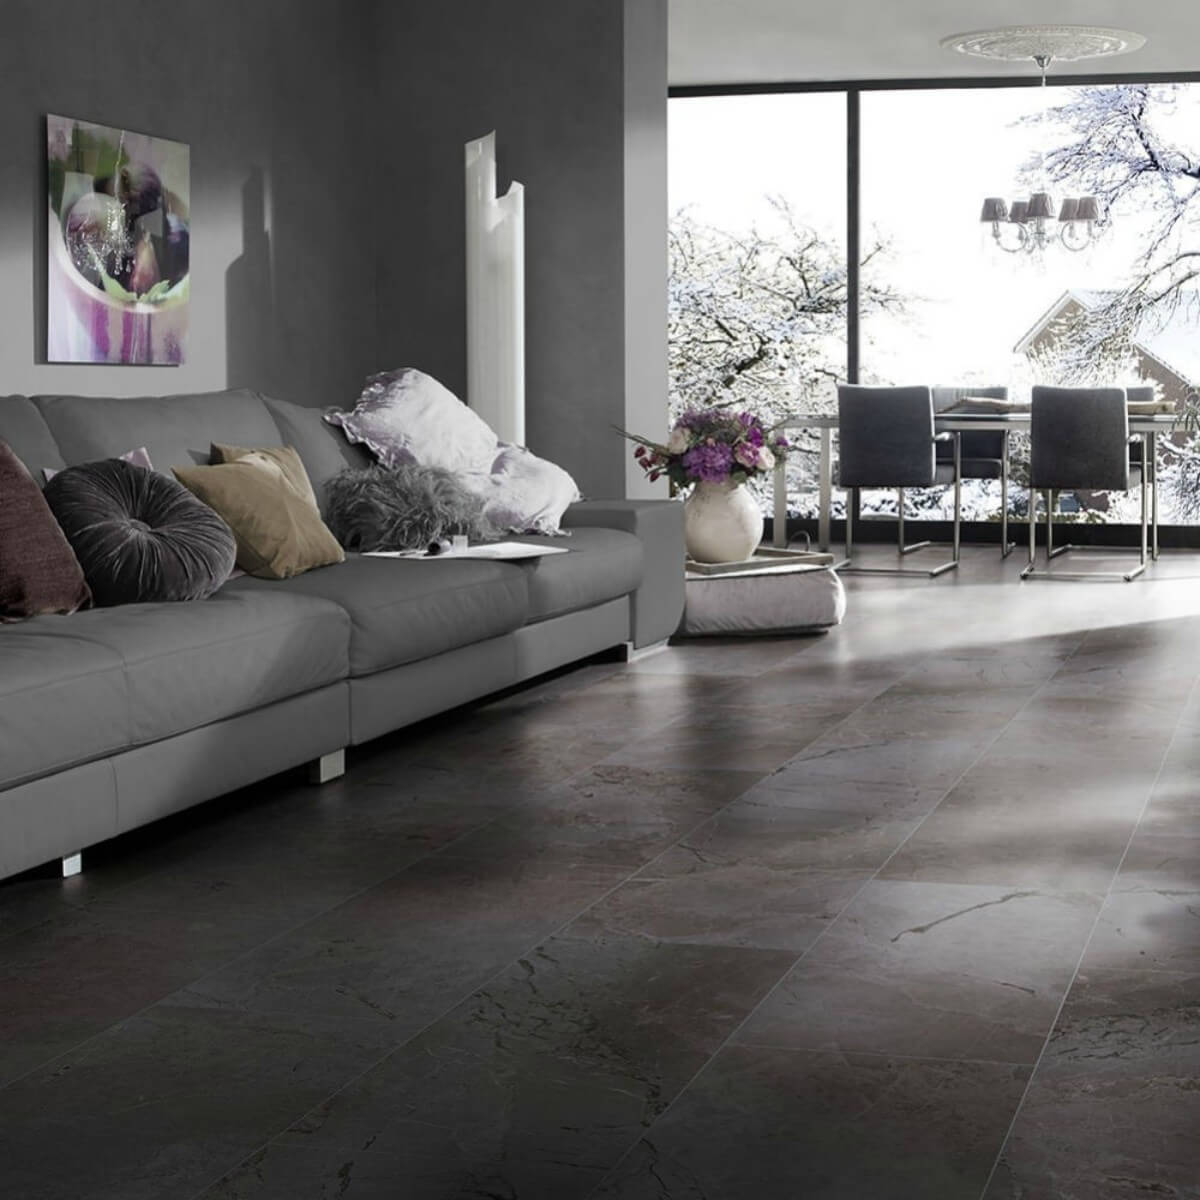 Buying Cheap Wood Flooring Doesn't Have to Mean Sacrificing on Quality - Two